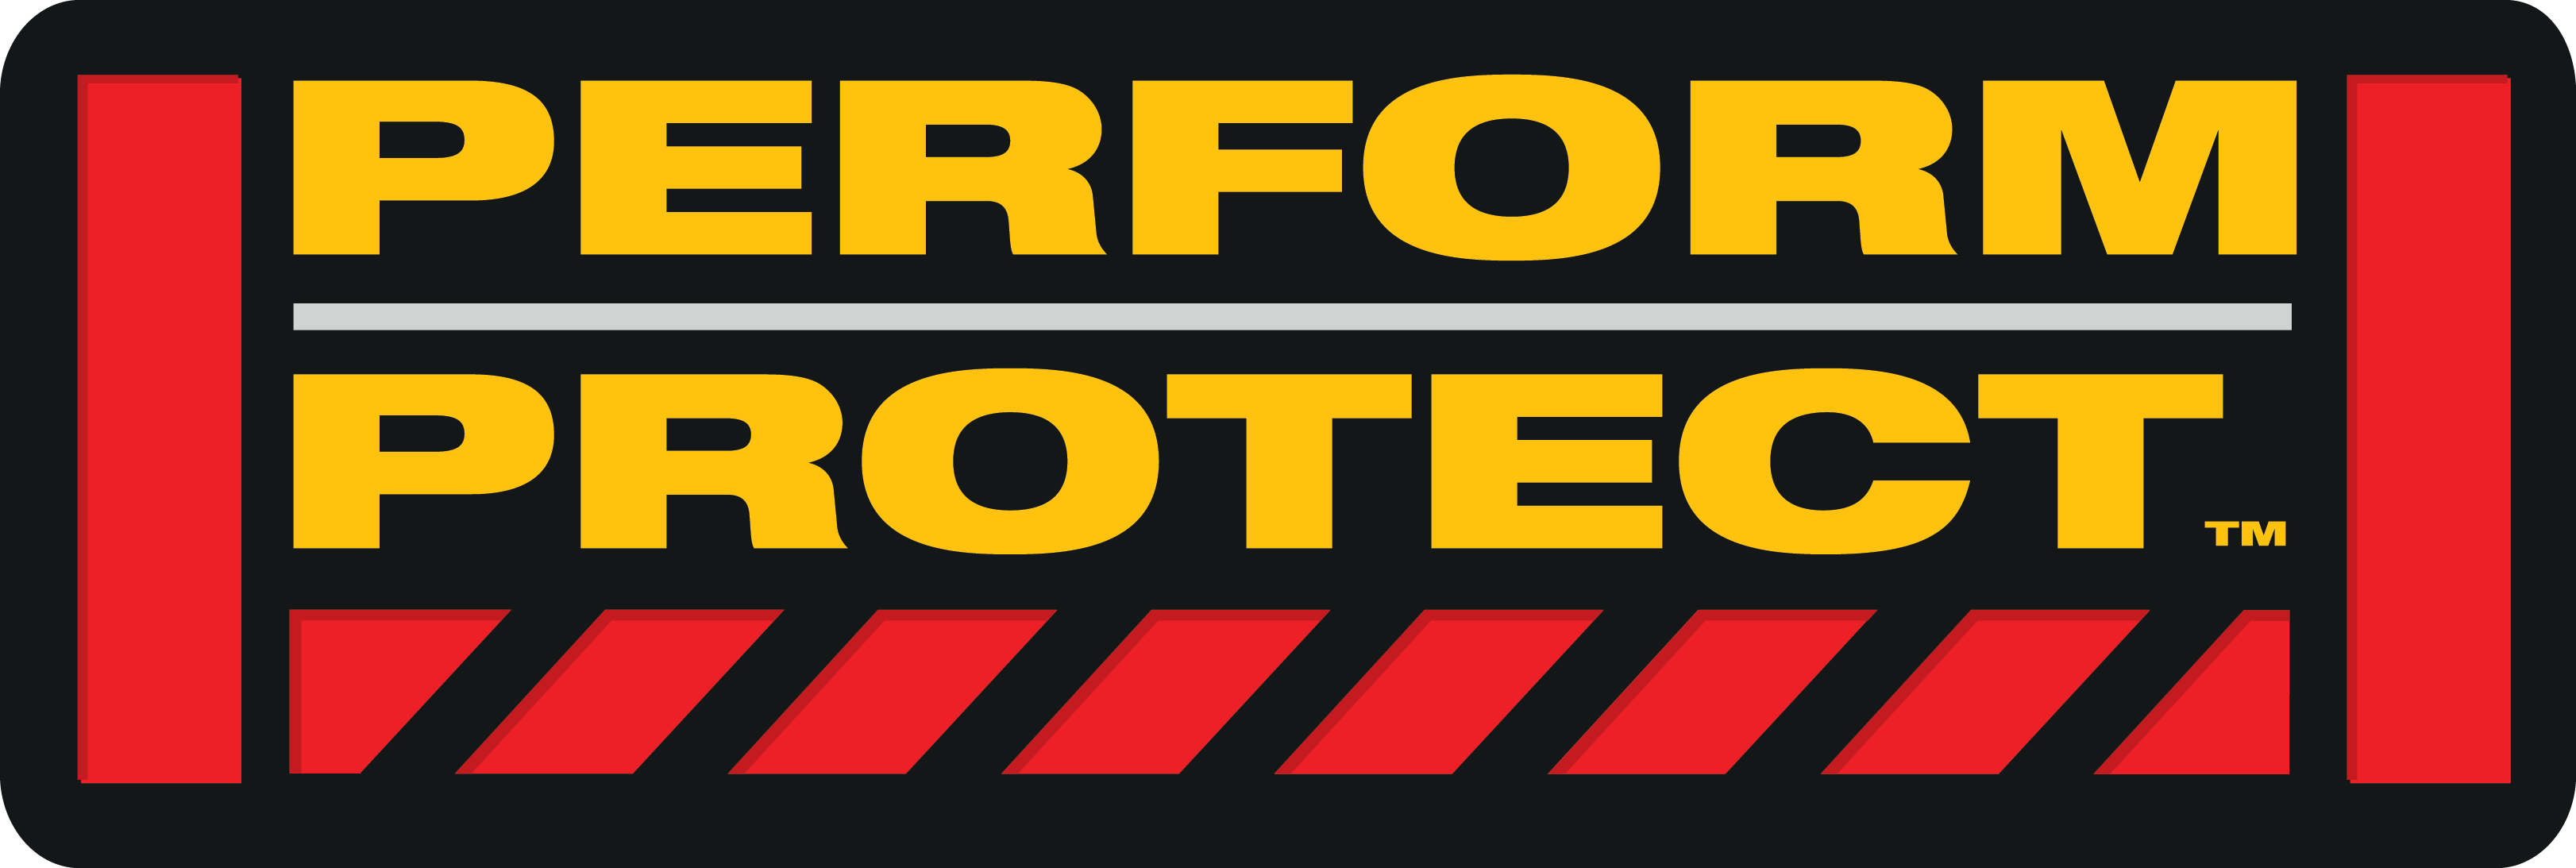 PerformProtect_VECTOR